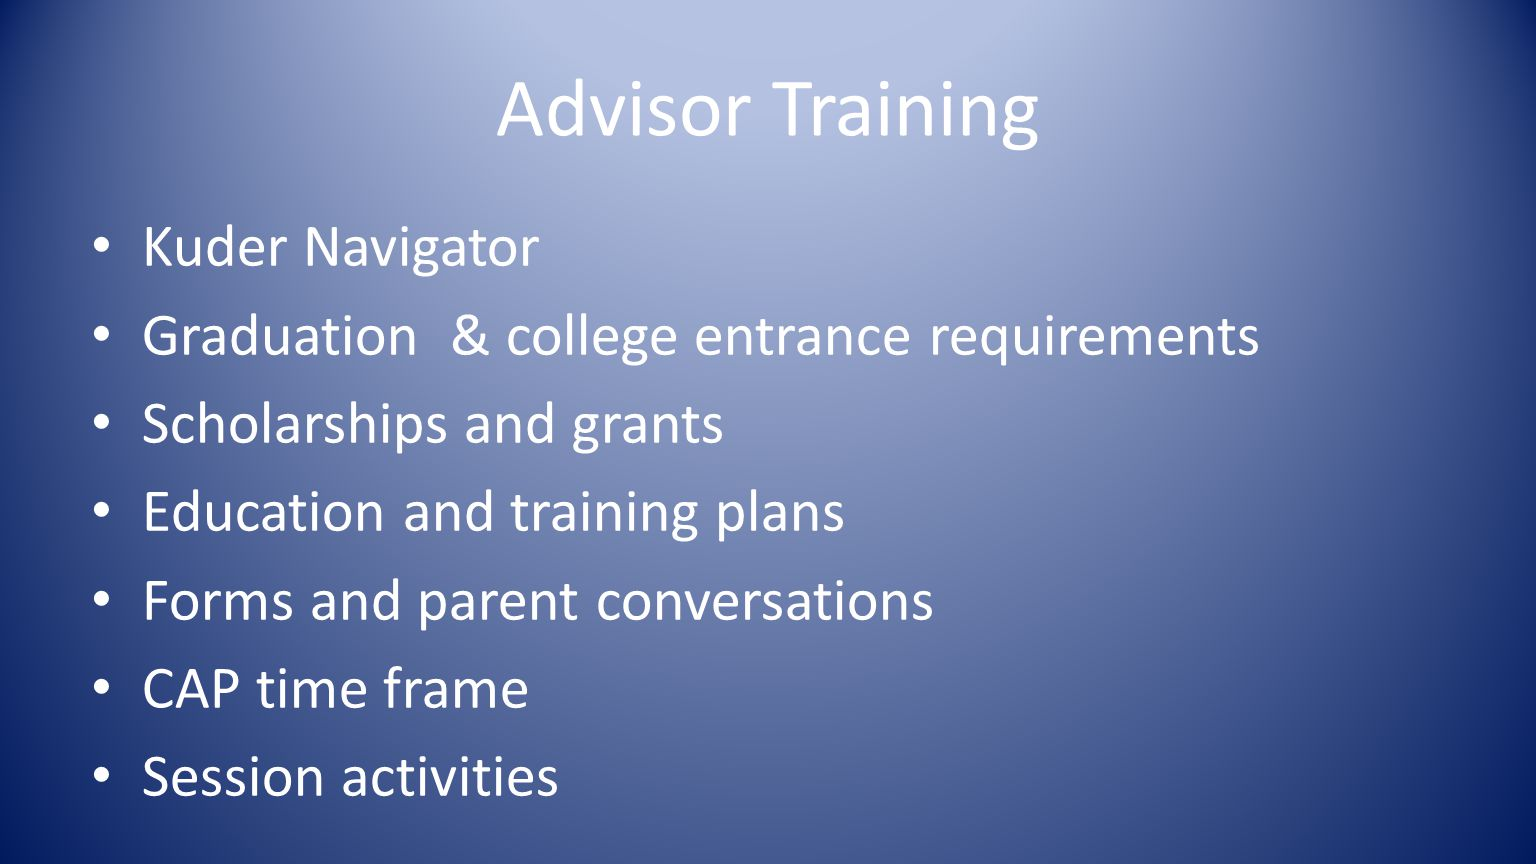 Advisor Training Kuder Navigator Graduation & college entrance requirements Scholarships and grants Education and training plans Forms and parent conversations CAP time frame Session activities